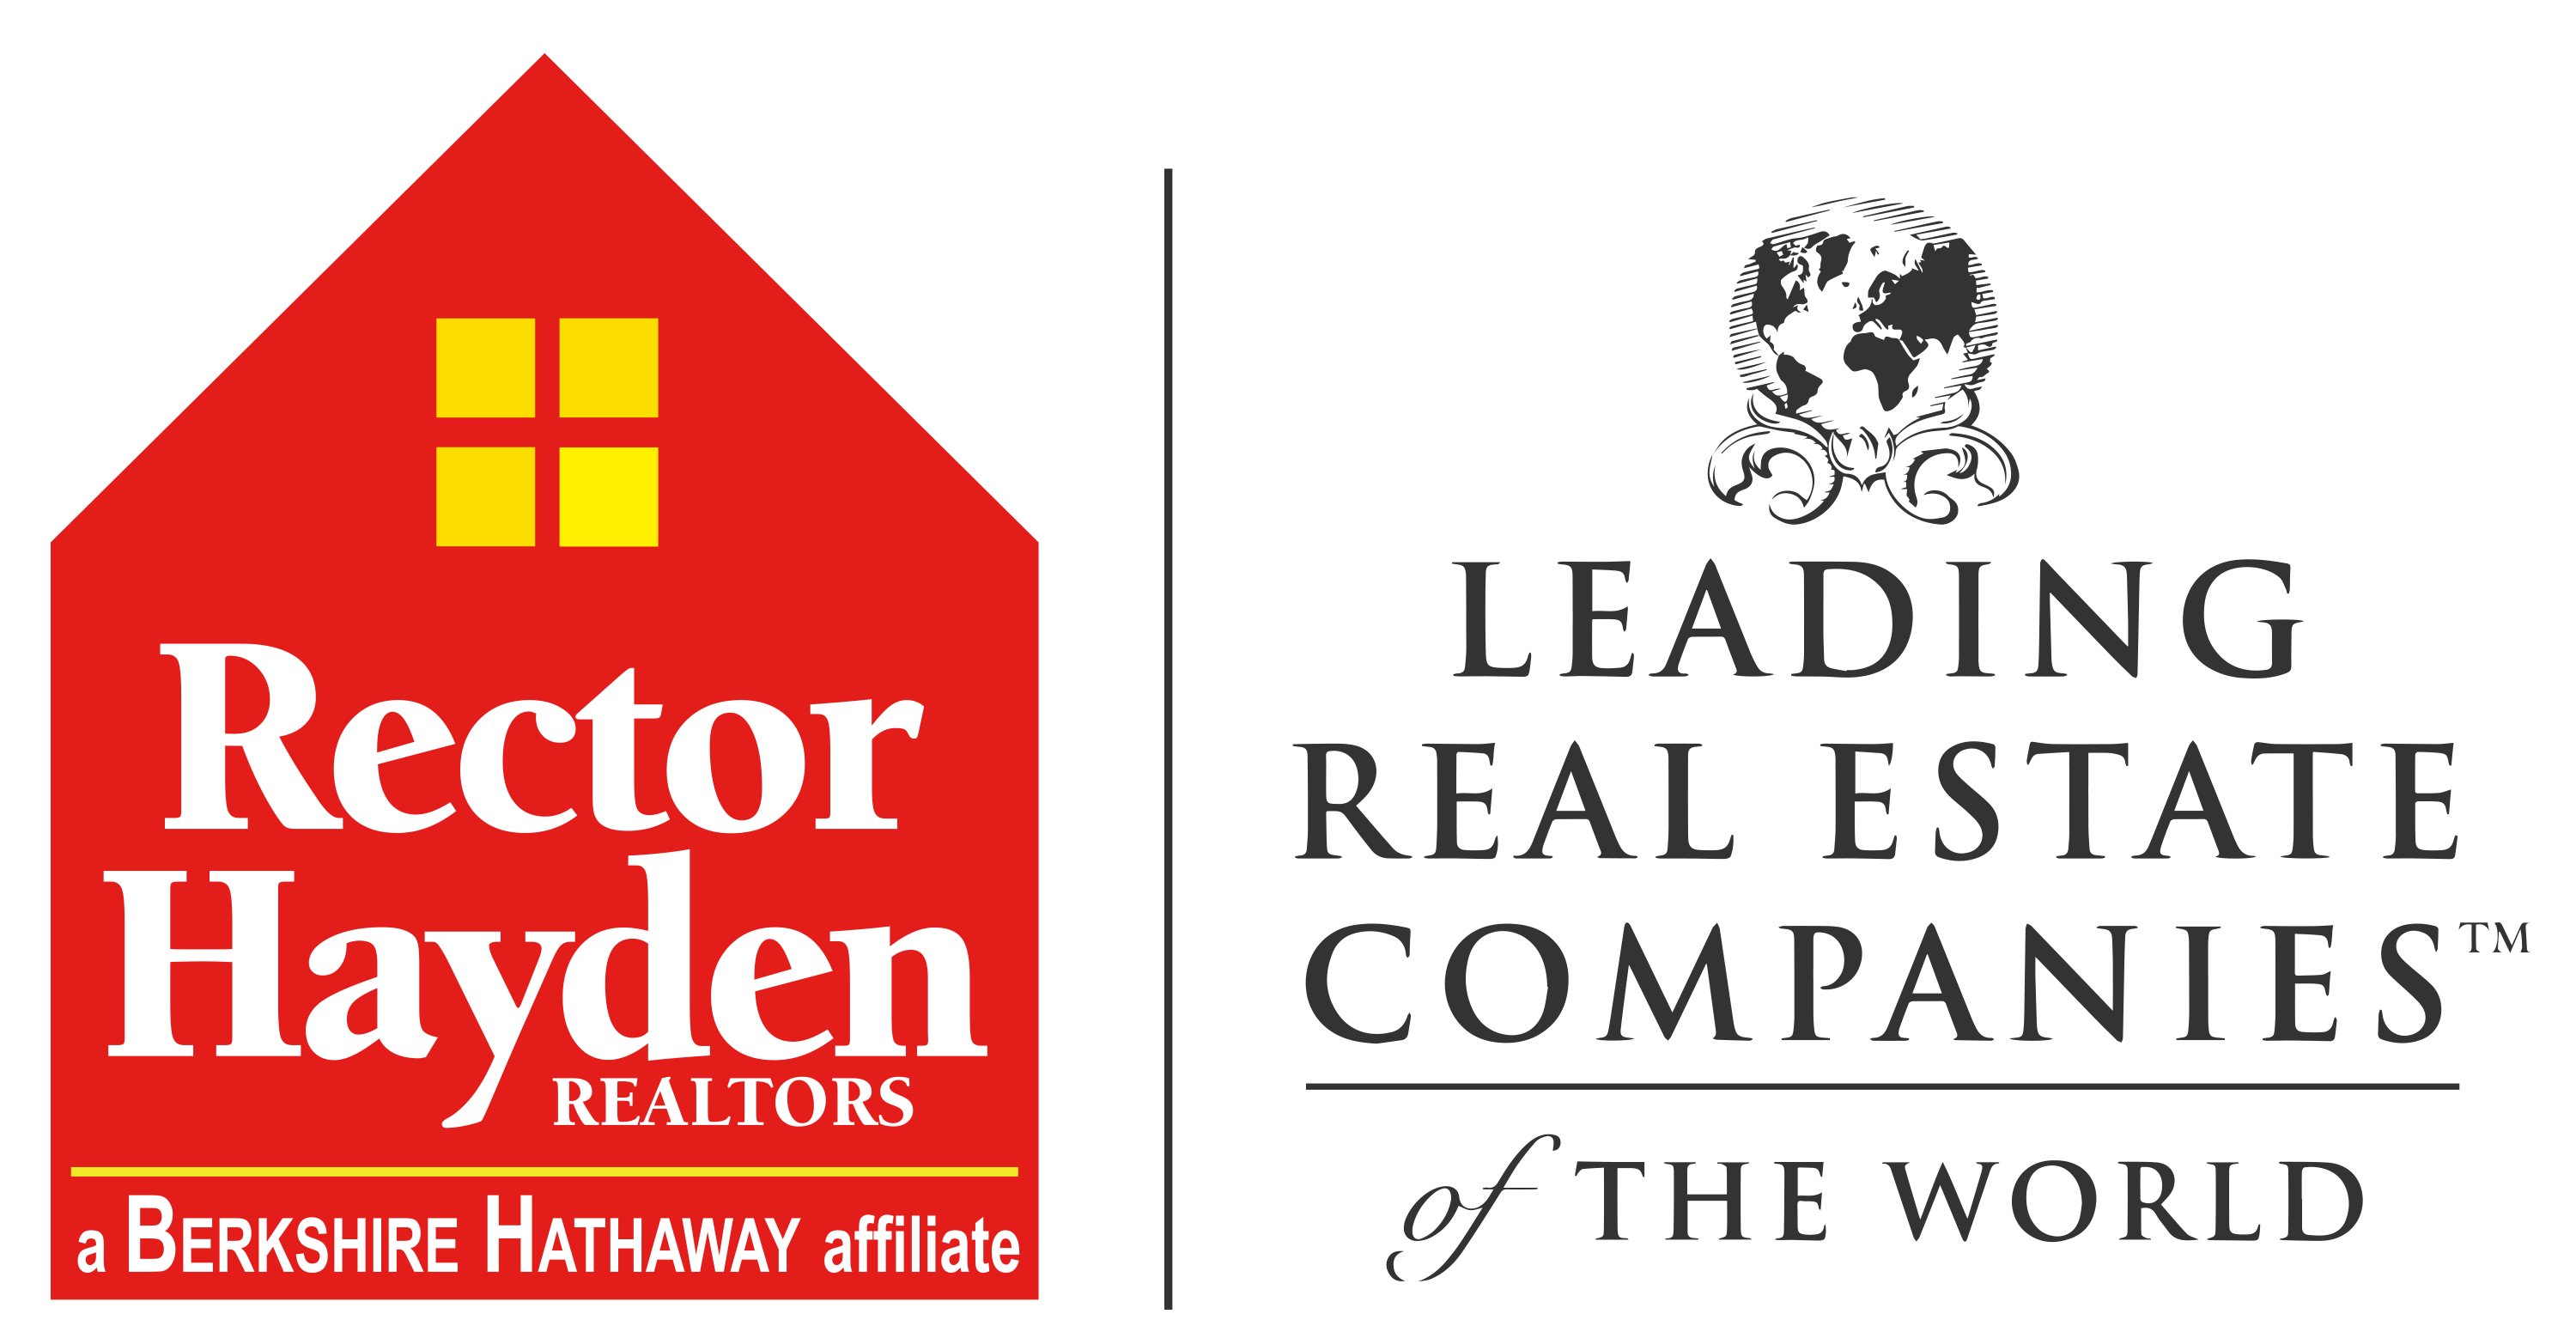 Logo - Rector Hayden REALTORS a Berkshire Hathaway Affiliate and Leading Real Estate Companies (Trademark) of the World